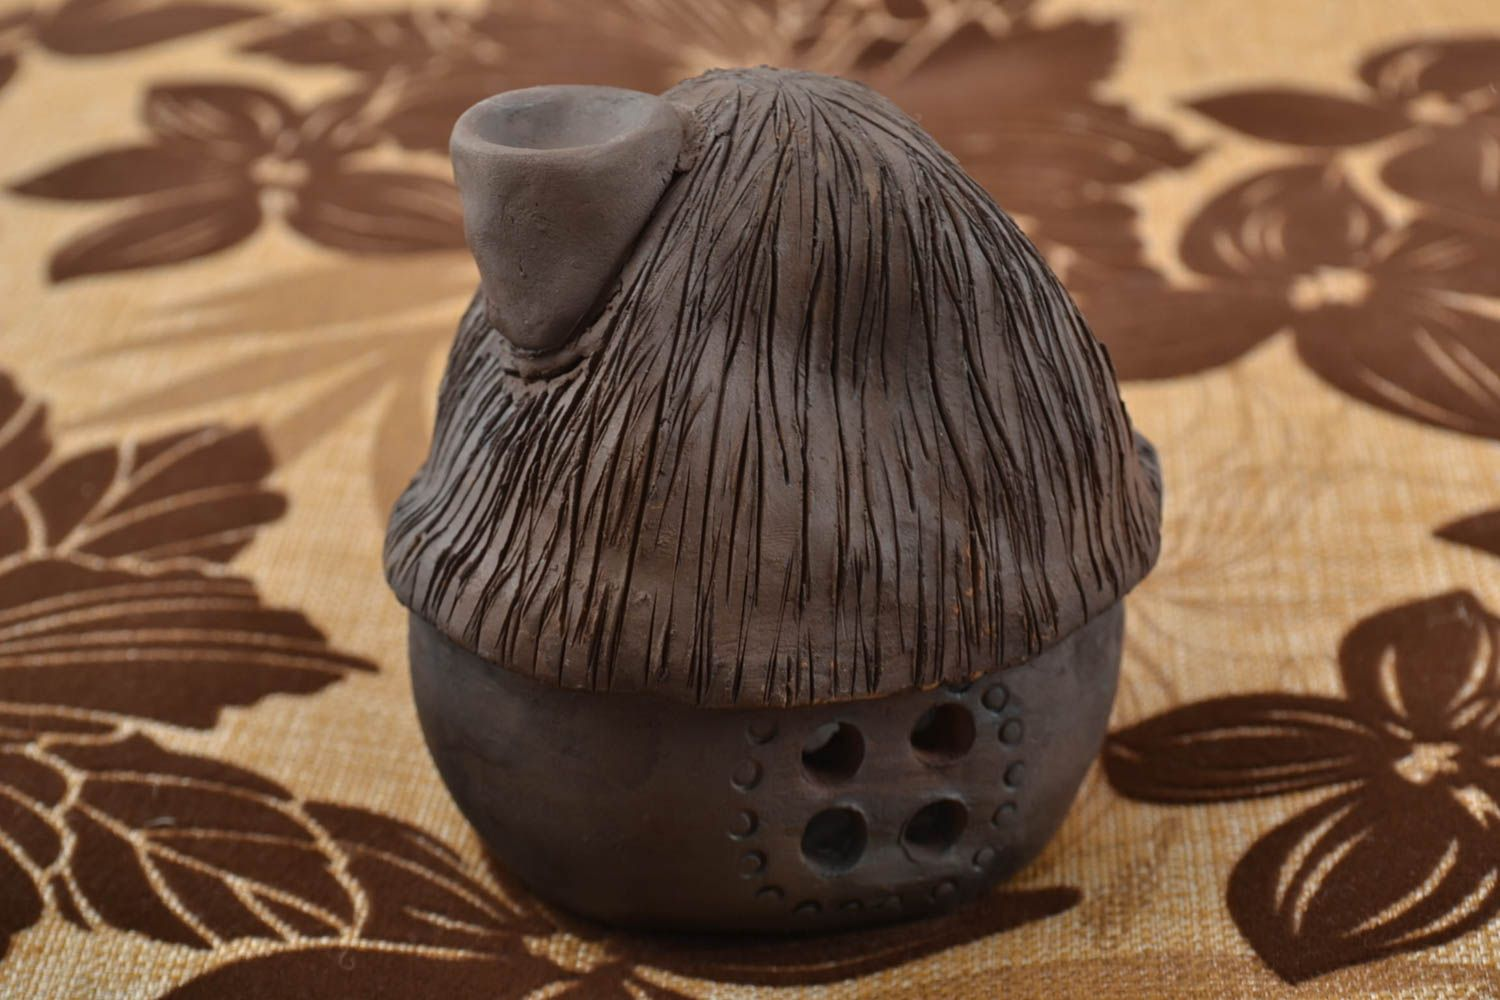 Clay oil burner in the form of small brown house beautiful handmade decor photo 1